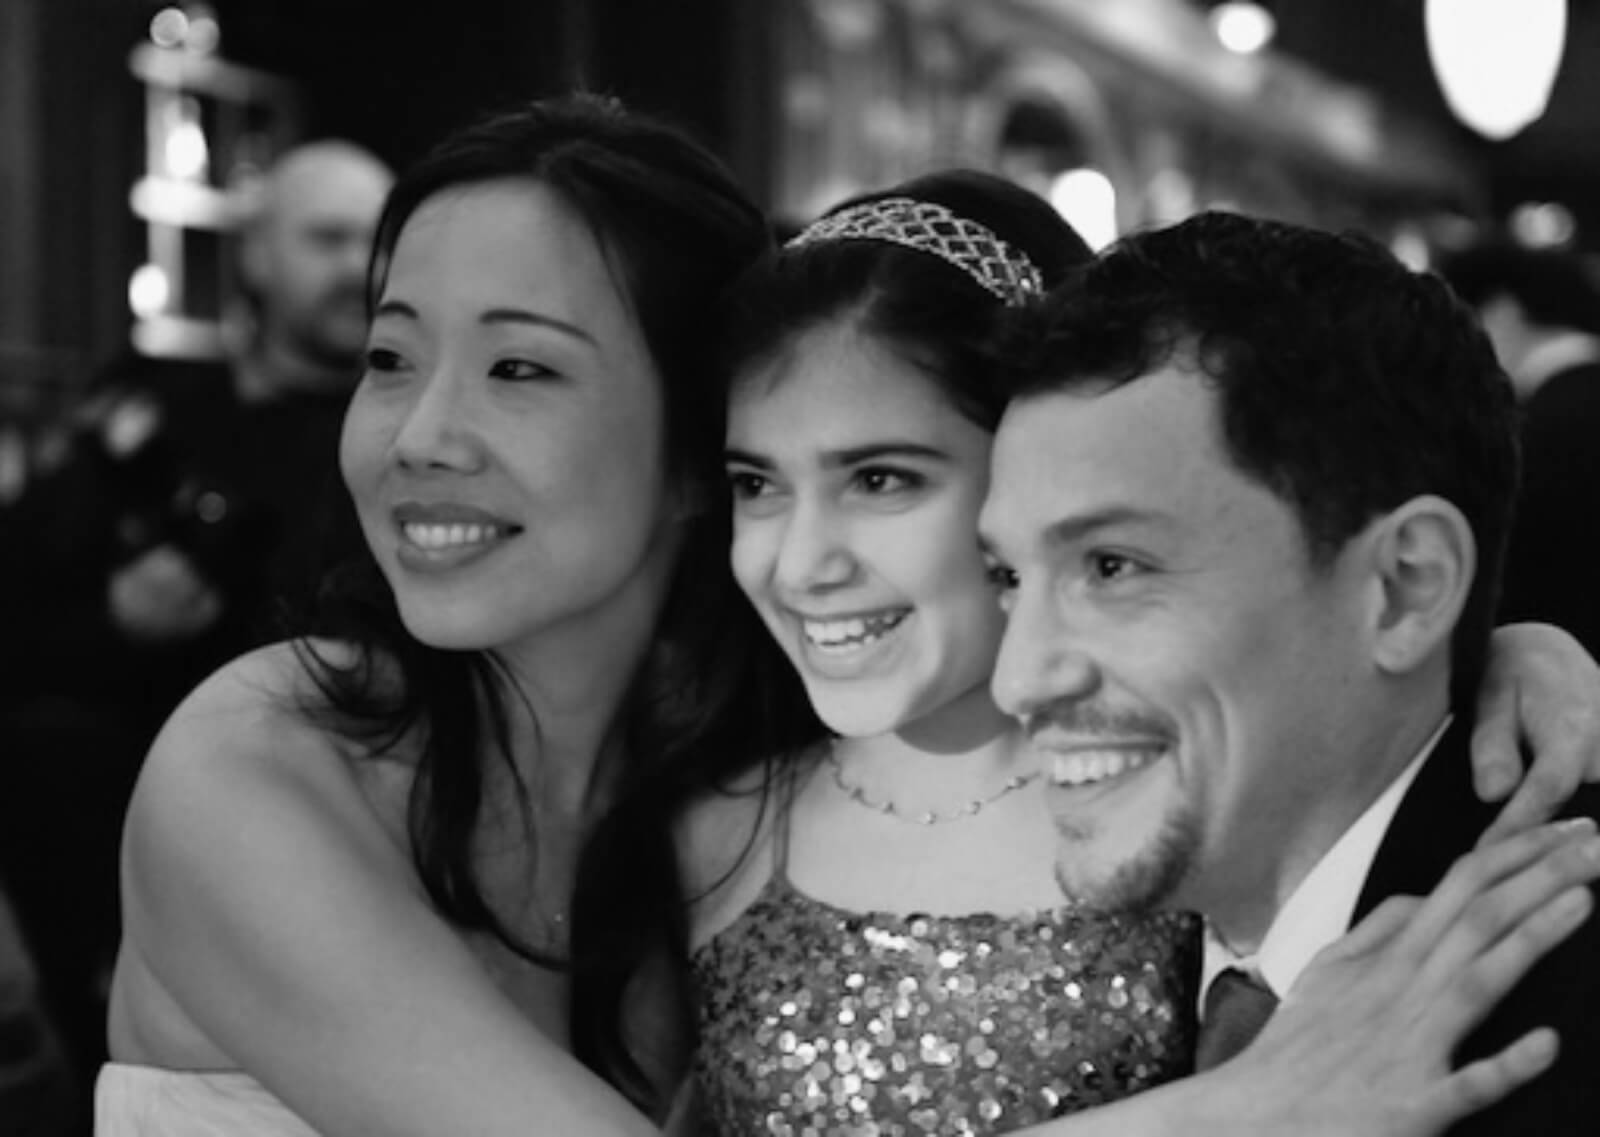 Black and white photo of members of the company in formal attire pictured from left to right: Pearl Sun, Lina Silver, Miguel Cervantes.